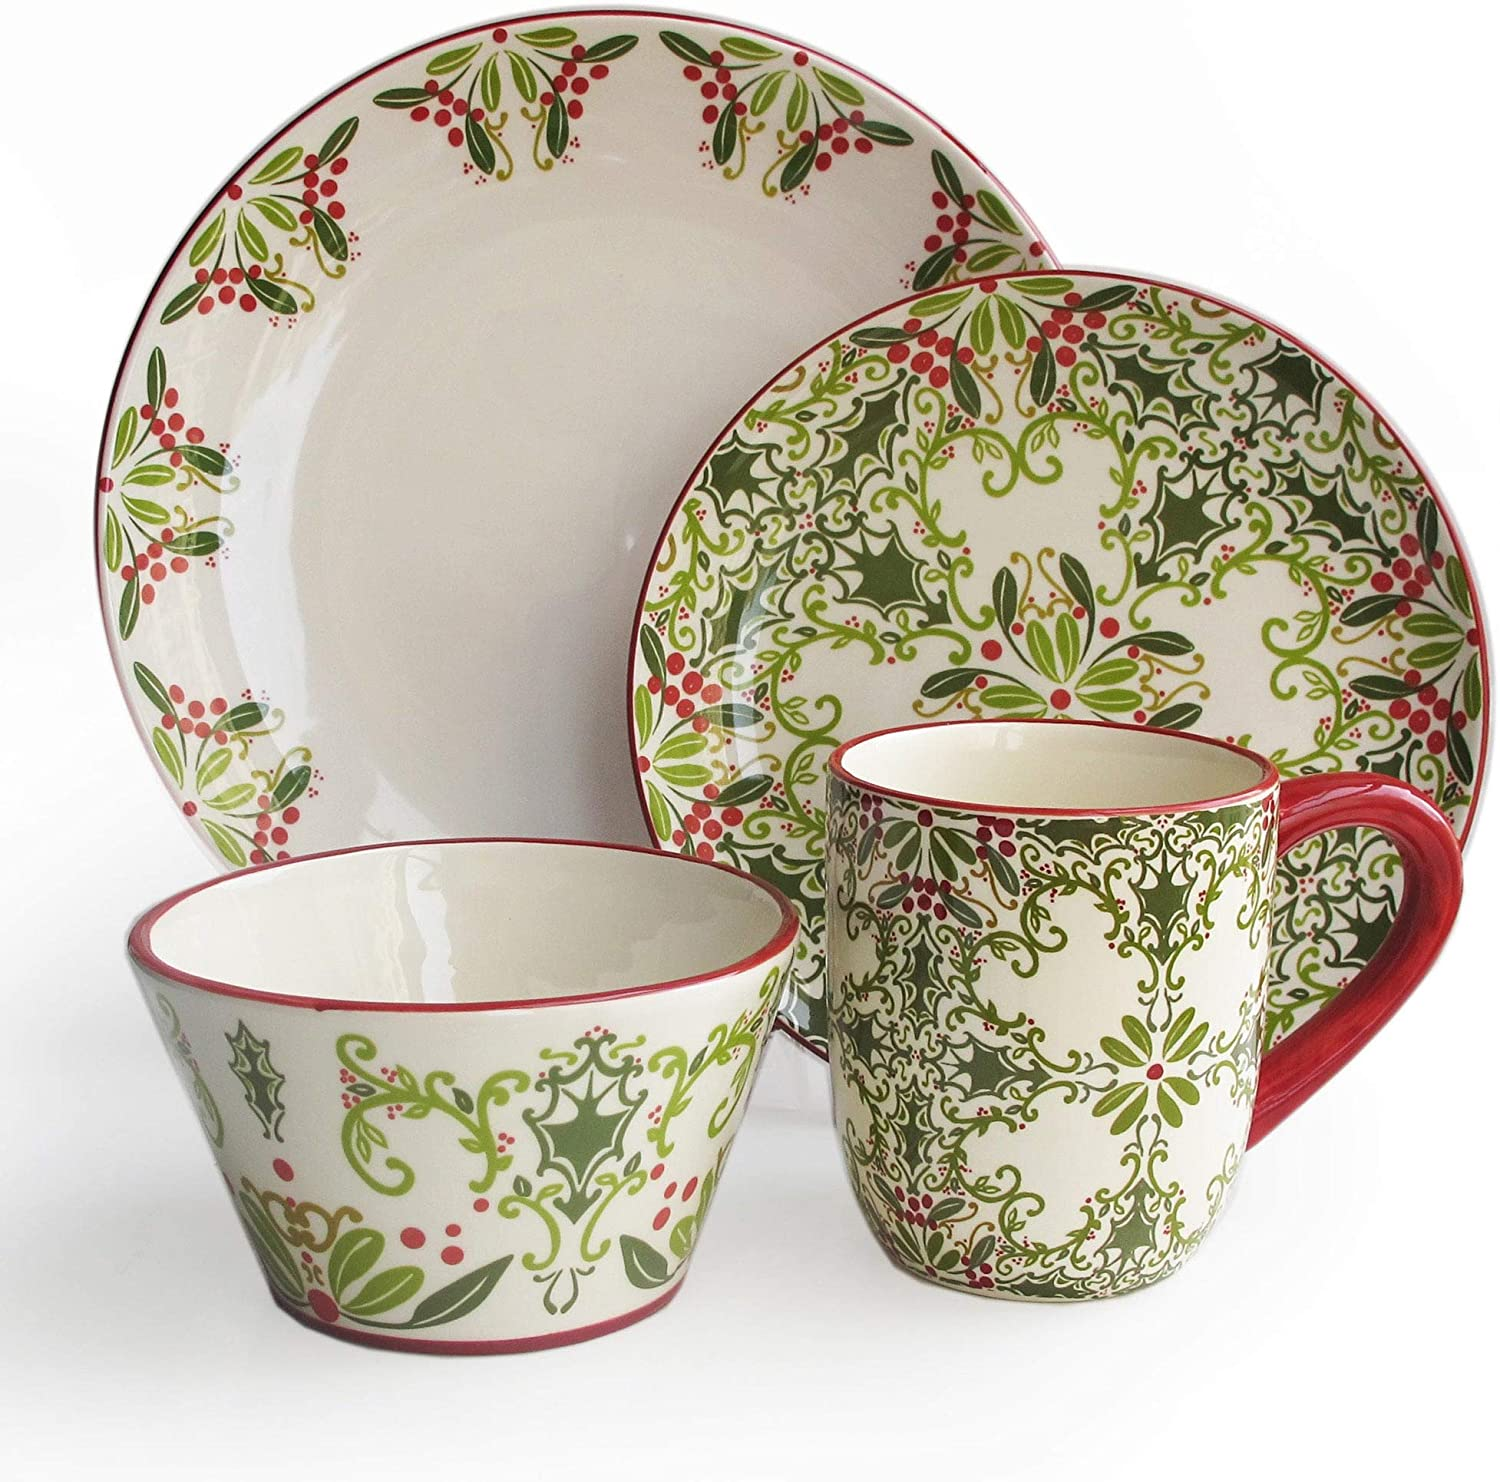 Dinnerware Set Floral Holiday Casual Round Stoneware 16 Piece